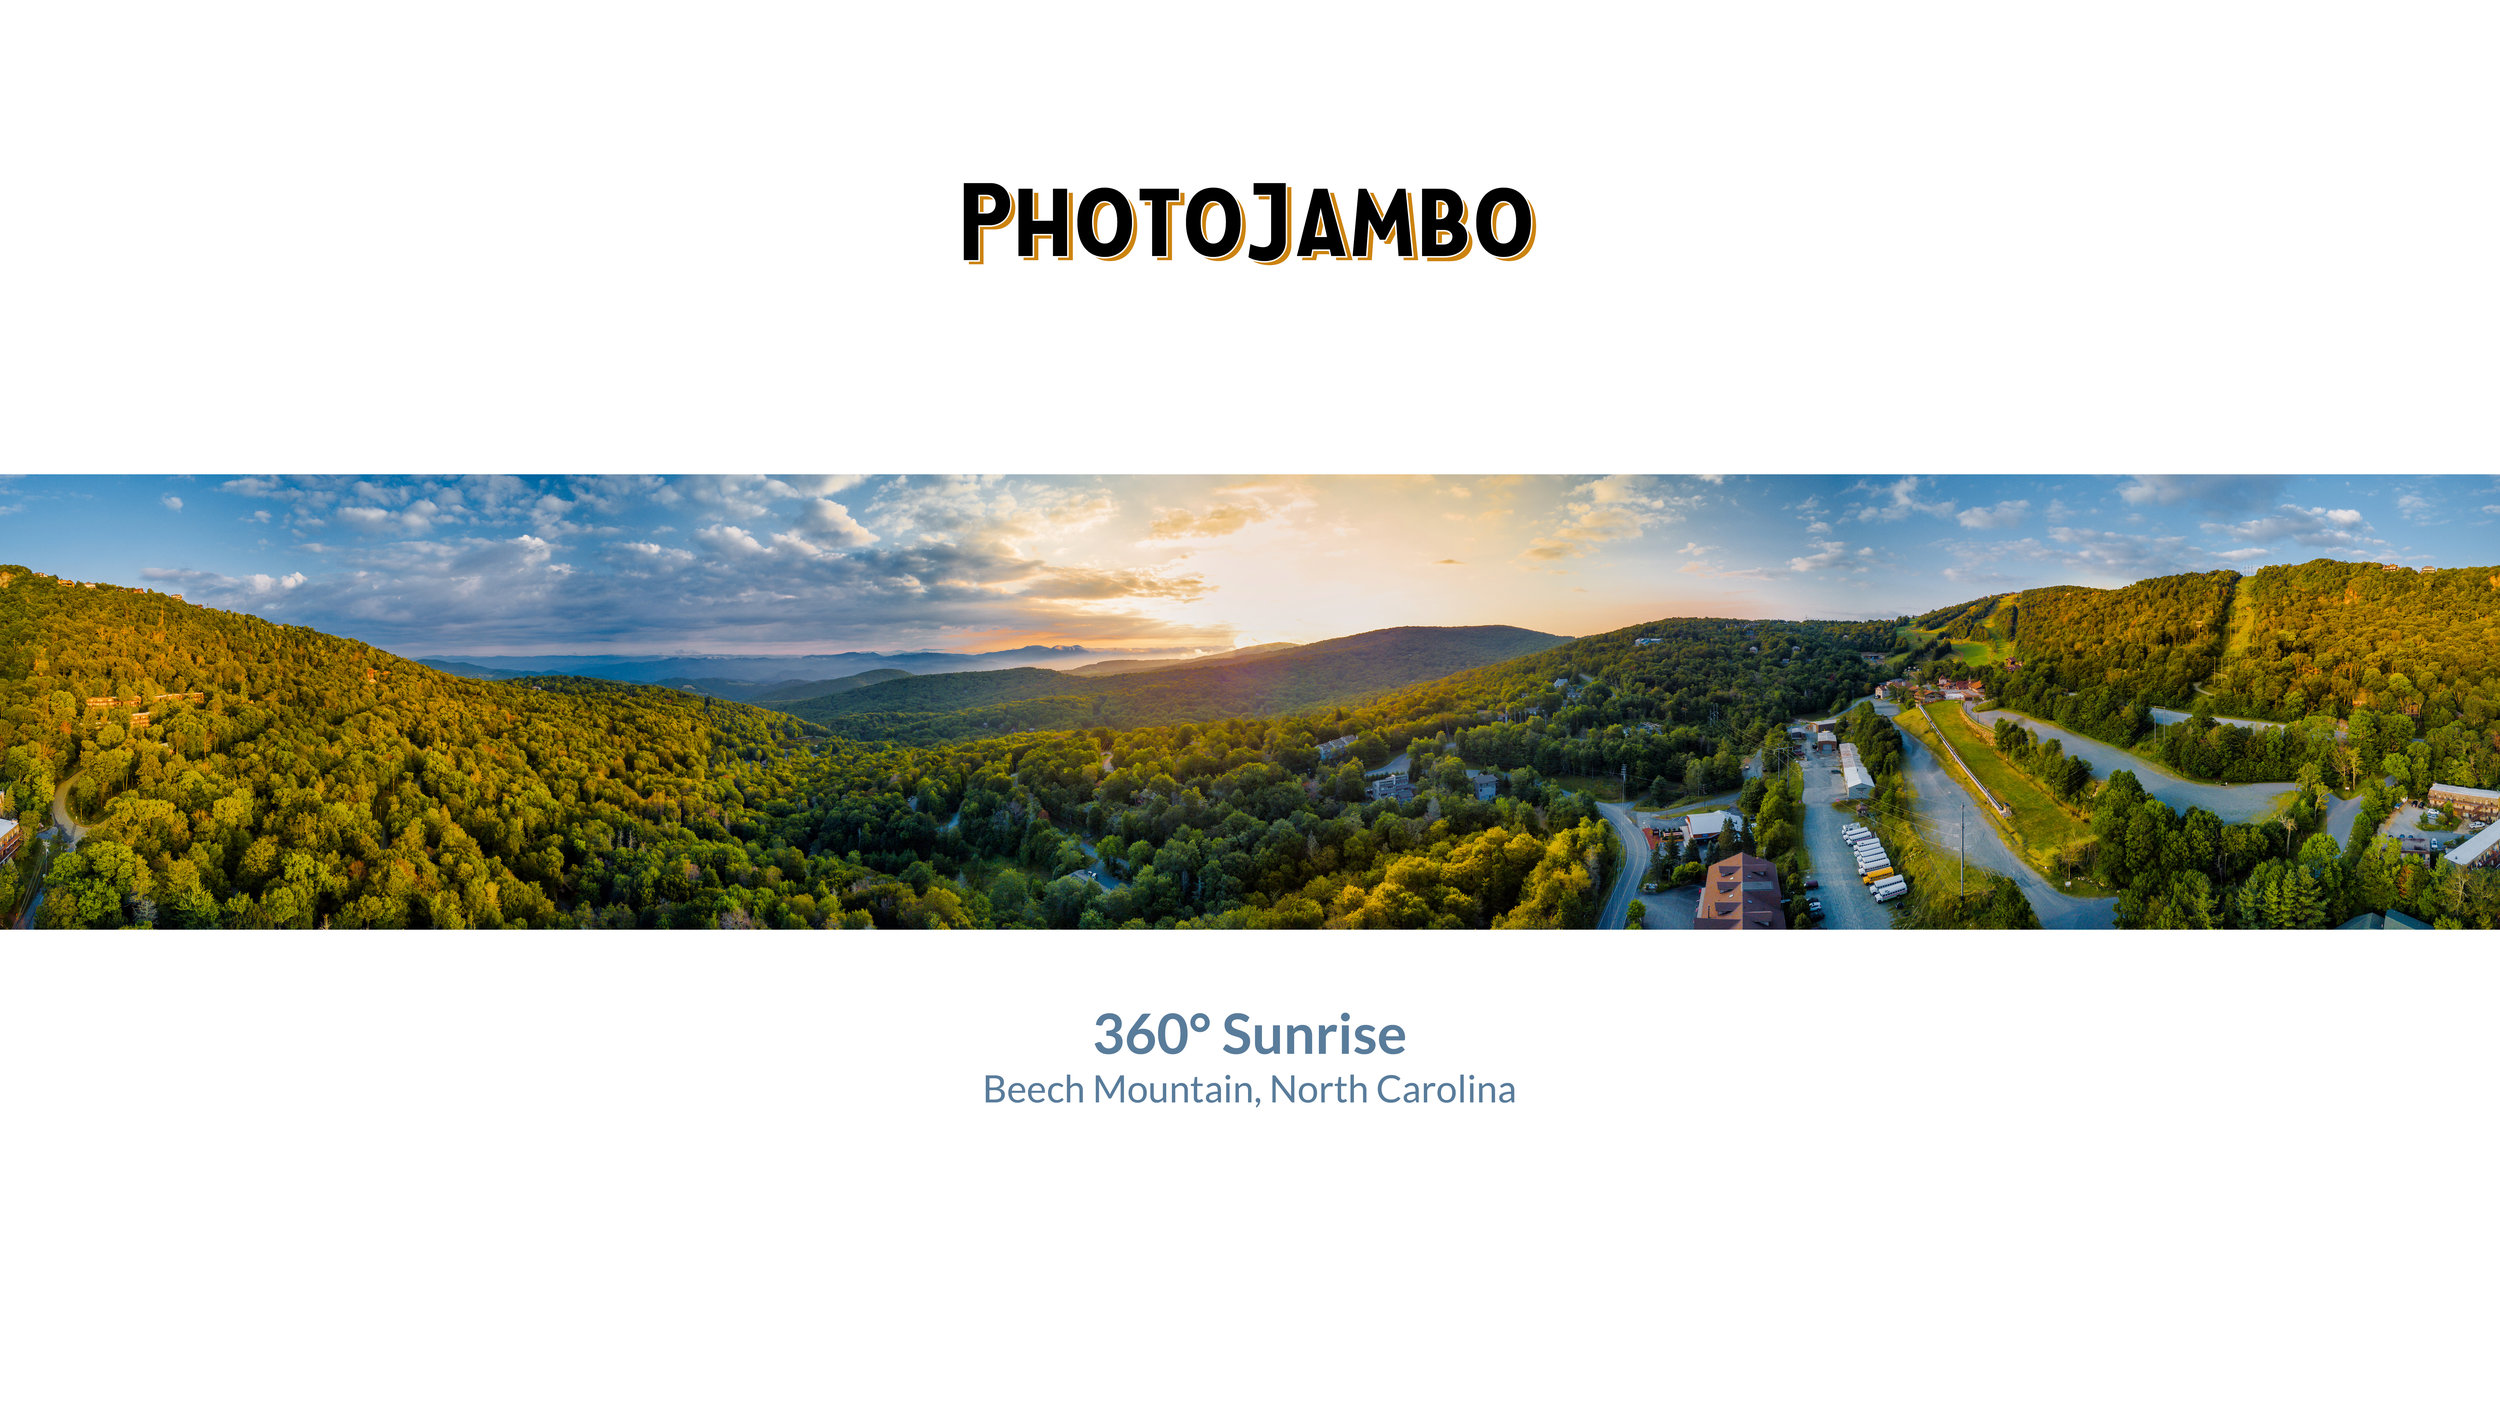 360 Sunrise Beech Mountain North Carolina.jpg